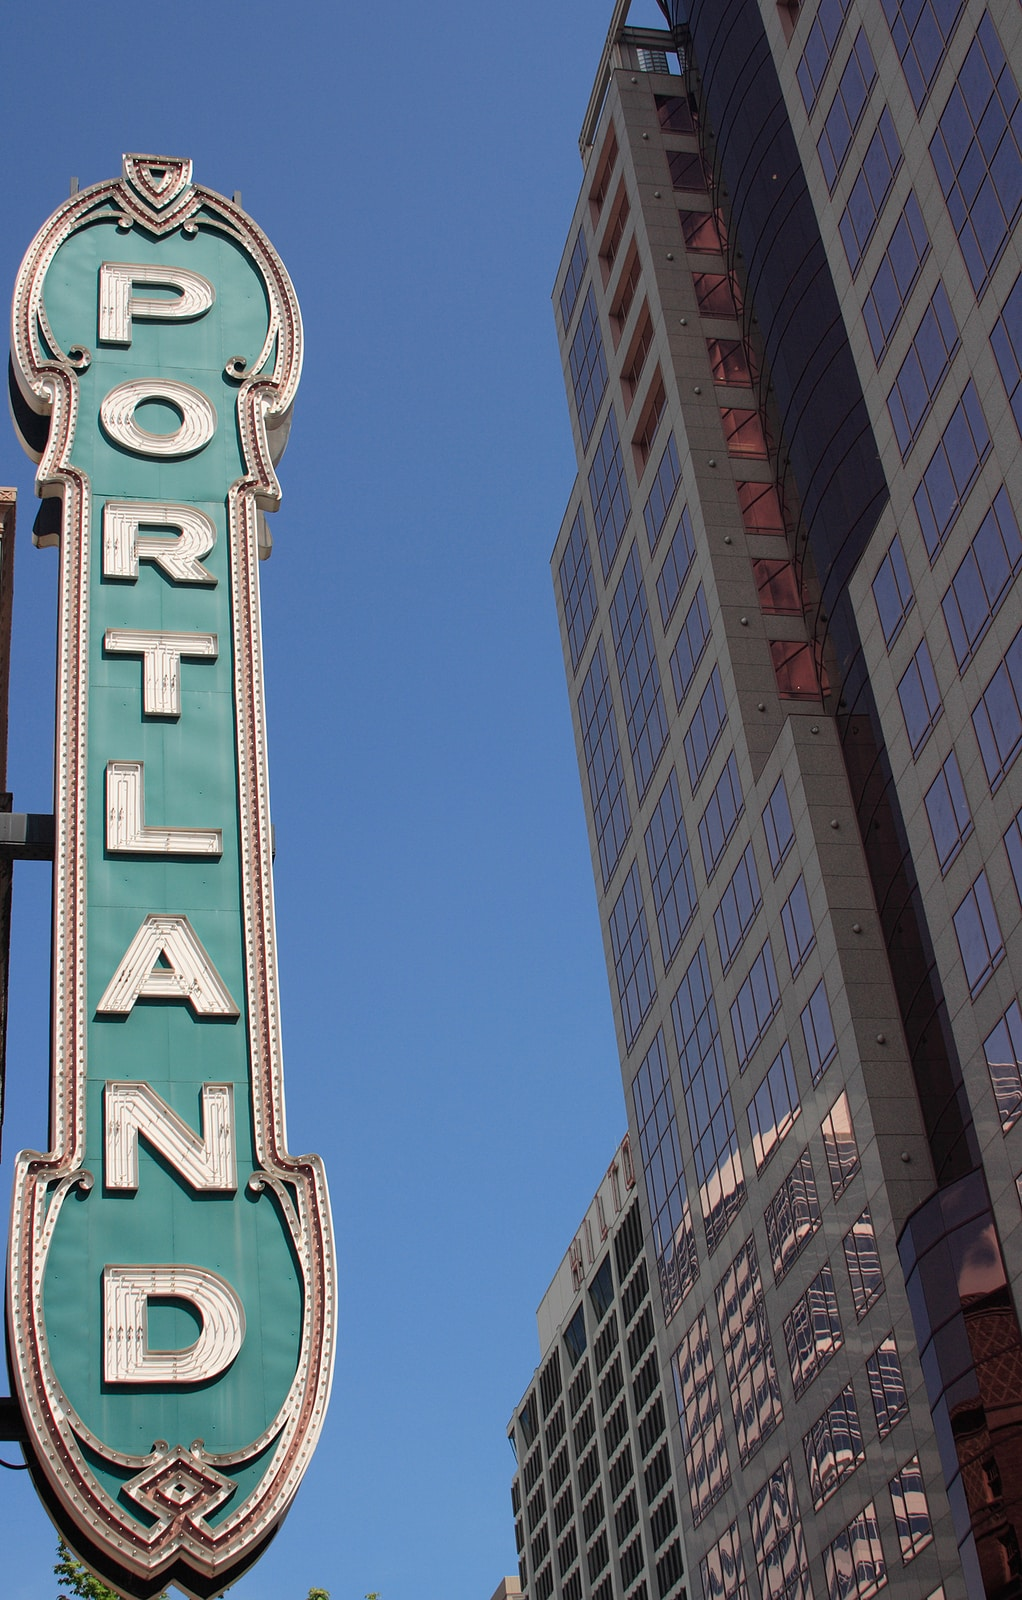 Historic theater landmark in downtown Portland Oregon by Cooper DuBois